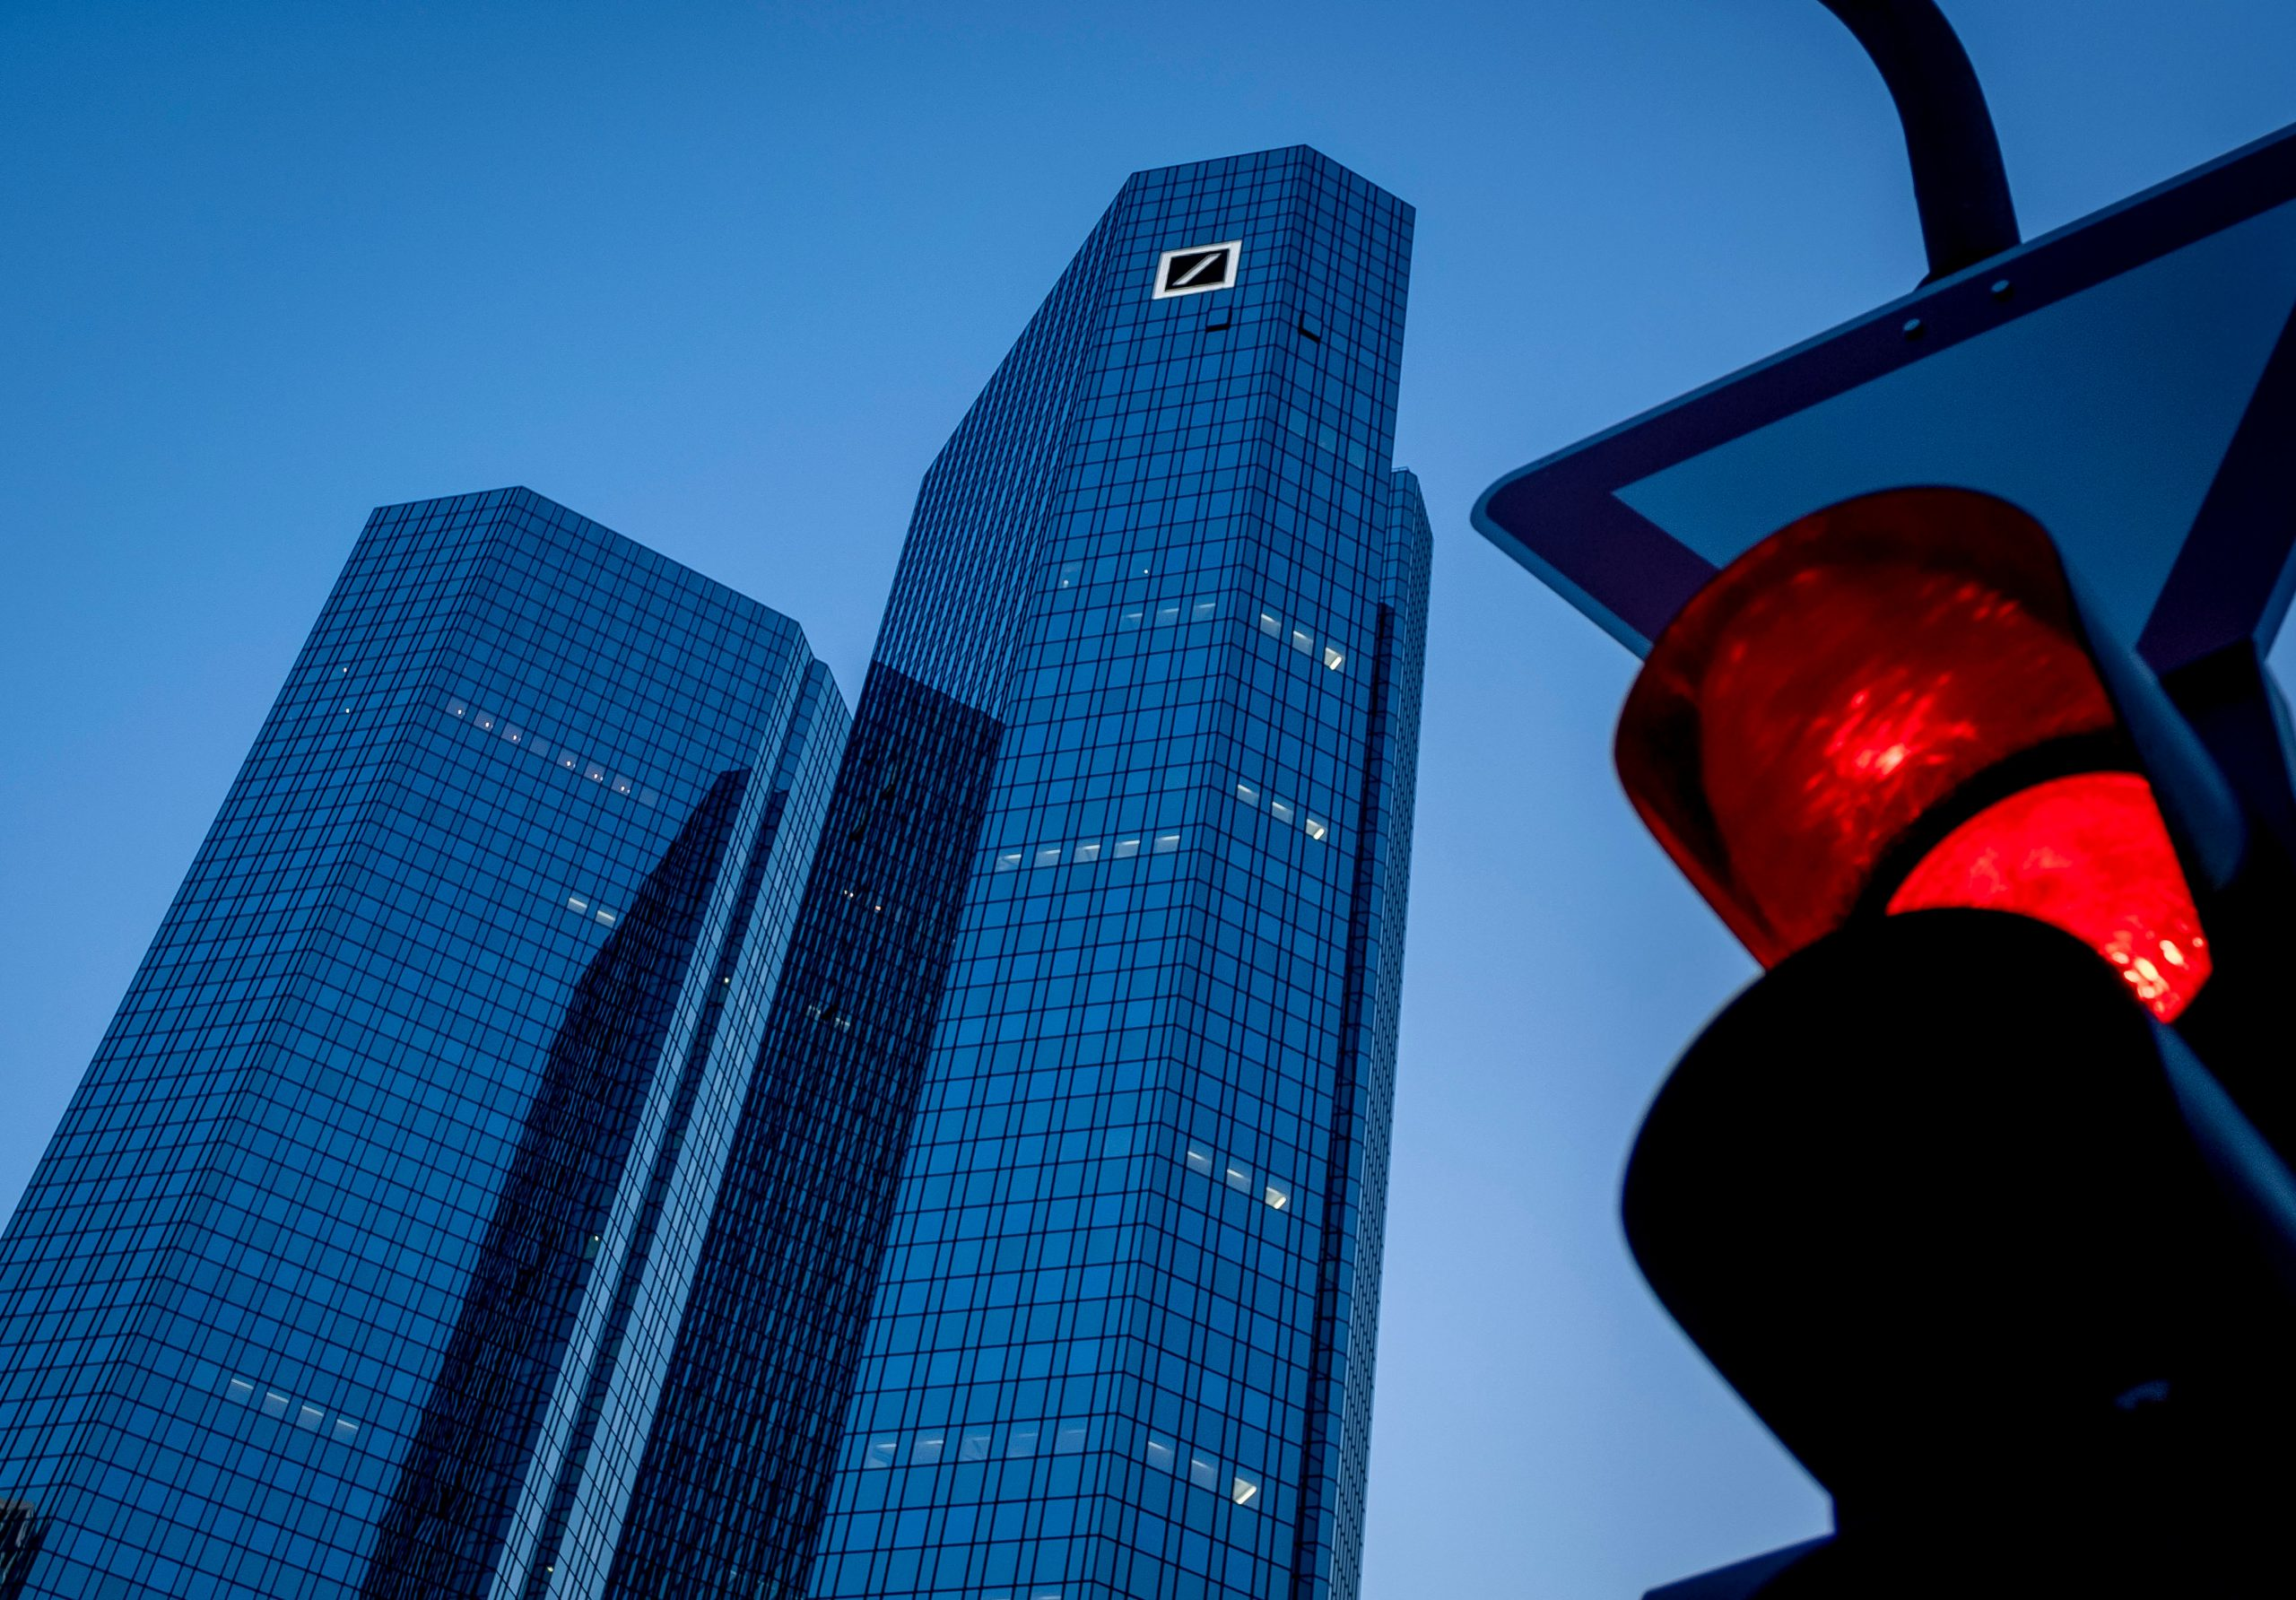 Deutsche Bank pays nearly $ 125 million to settle bribery and metal fees in the United States